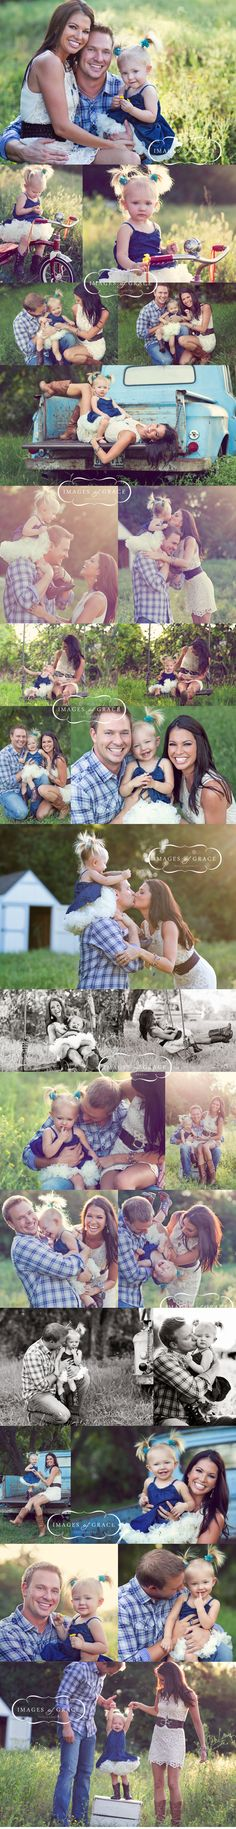 Family picture ideas. (Love her!)